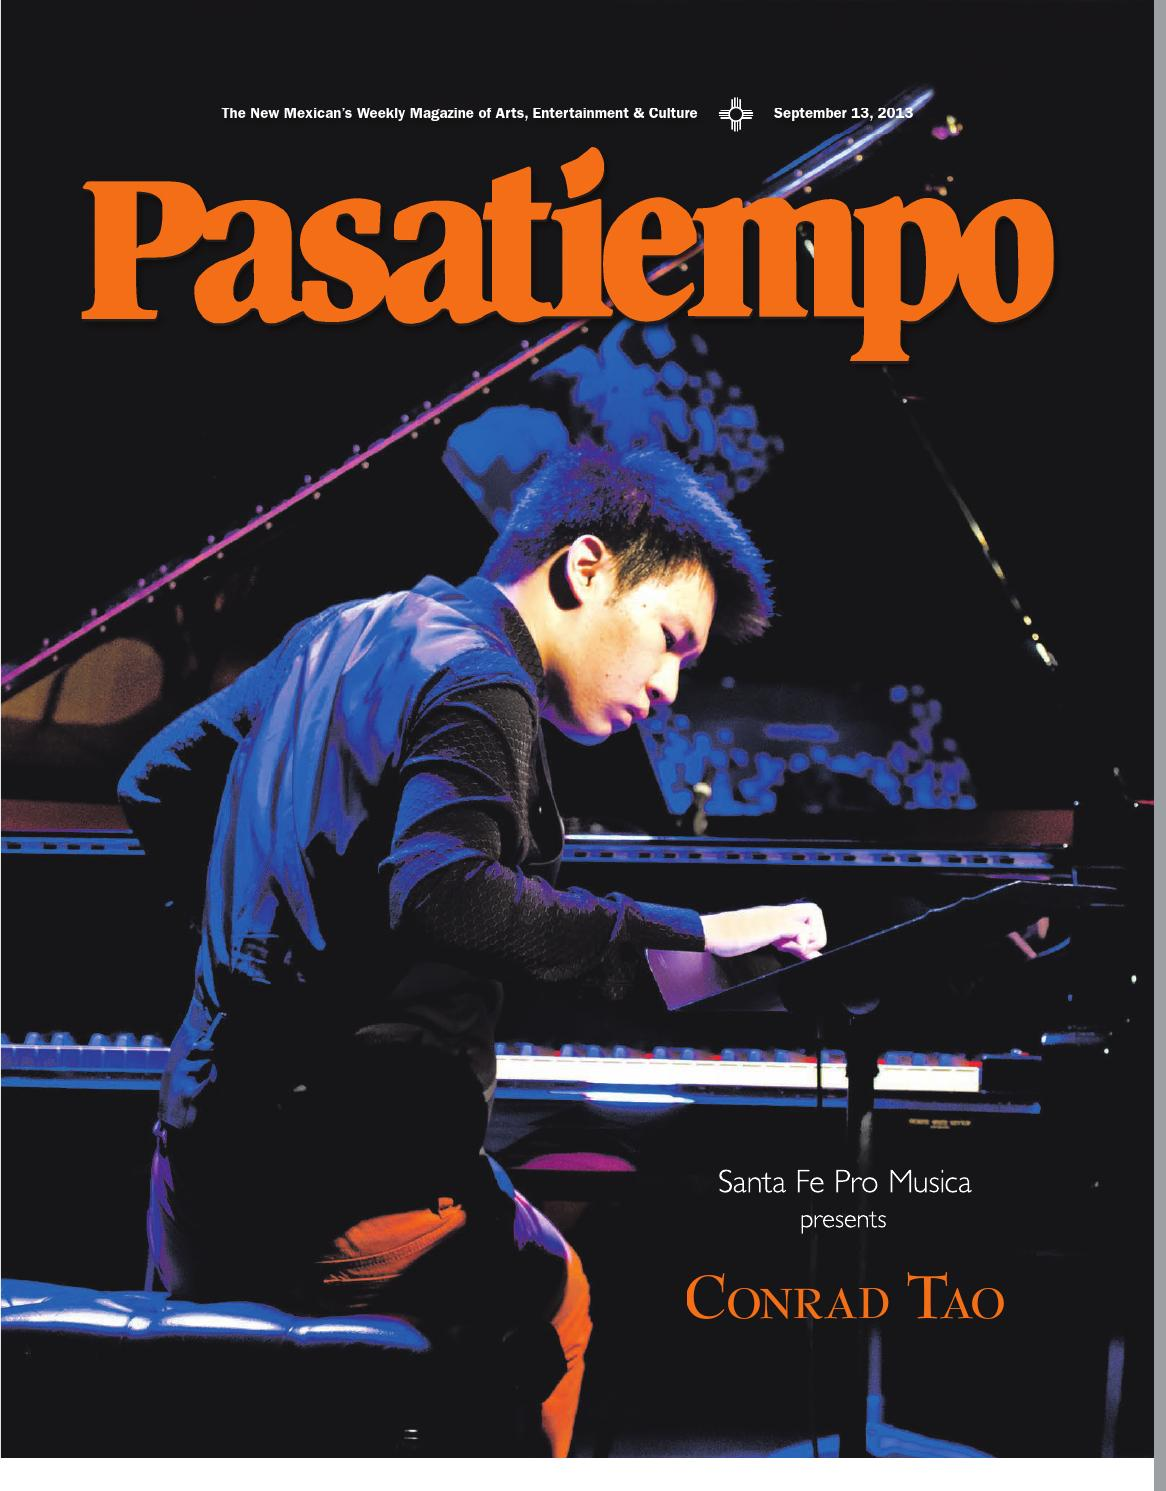 Pasatiempo, September 13, 2013 by The New Mexican - issuu